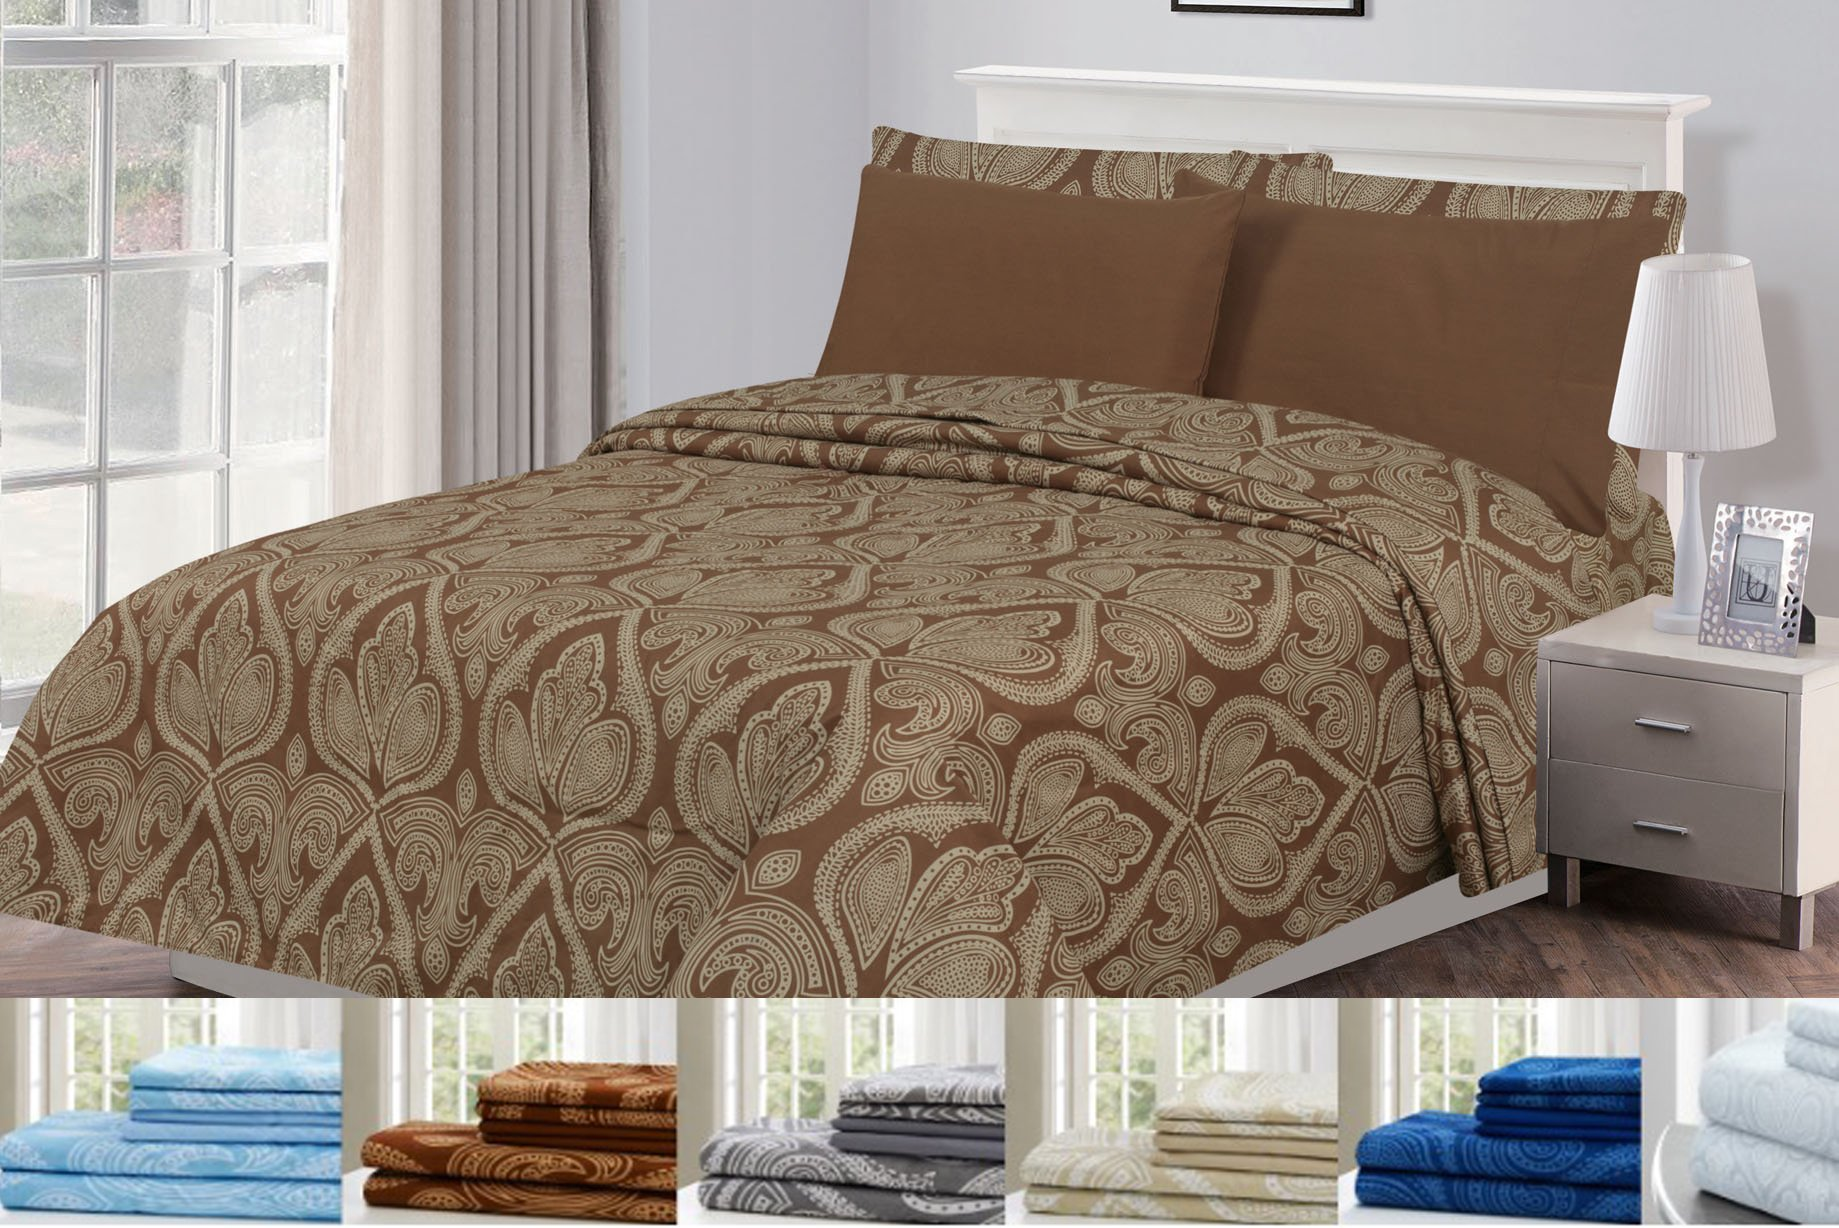 bc2398c23d 6 Piece: Paisley Printed Bed Sheet Set 1800 Count Egyptian Quality HOTEL  LUXURY Flat Sheet,Fitted Sheet with 4 Pillow Cases,Deep Pockets, Soft  Extremely ...